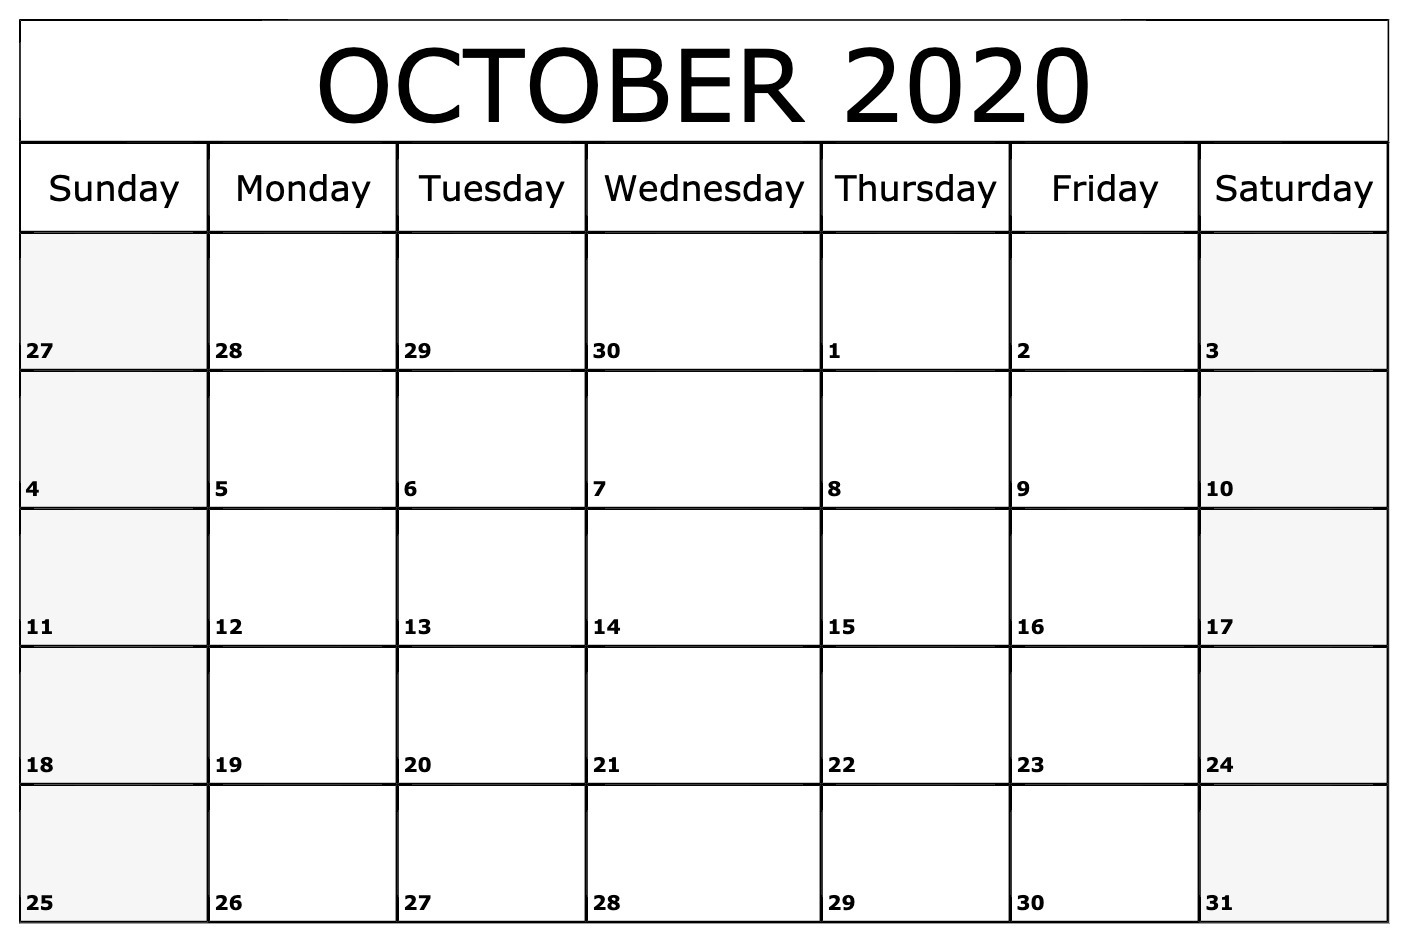 October 2020 Calendar PDF Word Excel Printable Template 1406x933